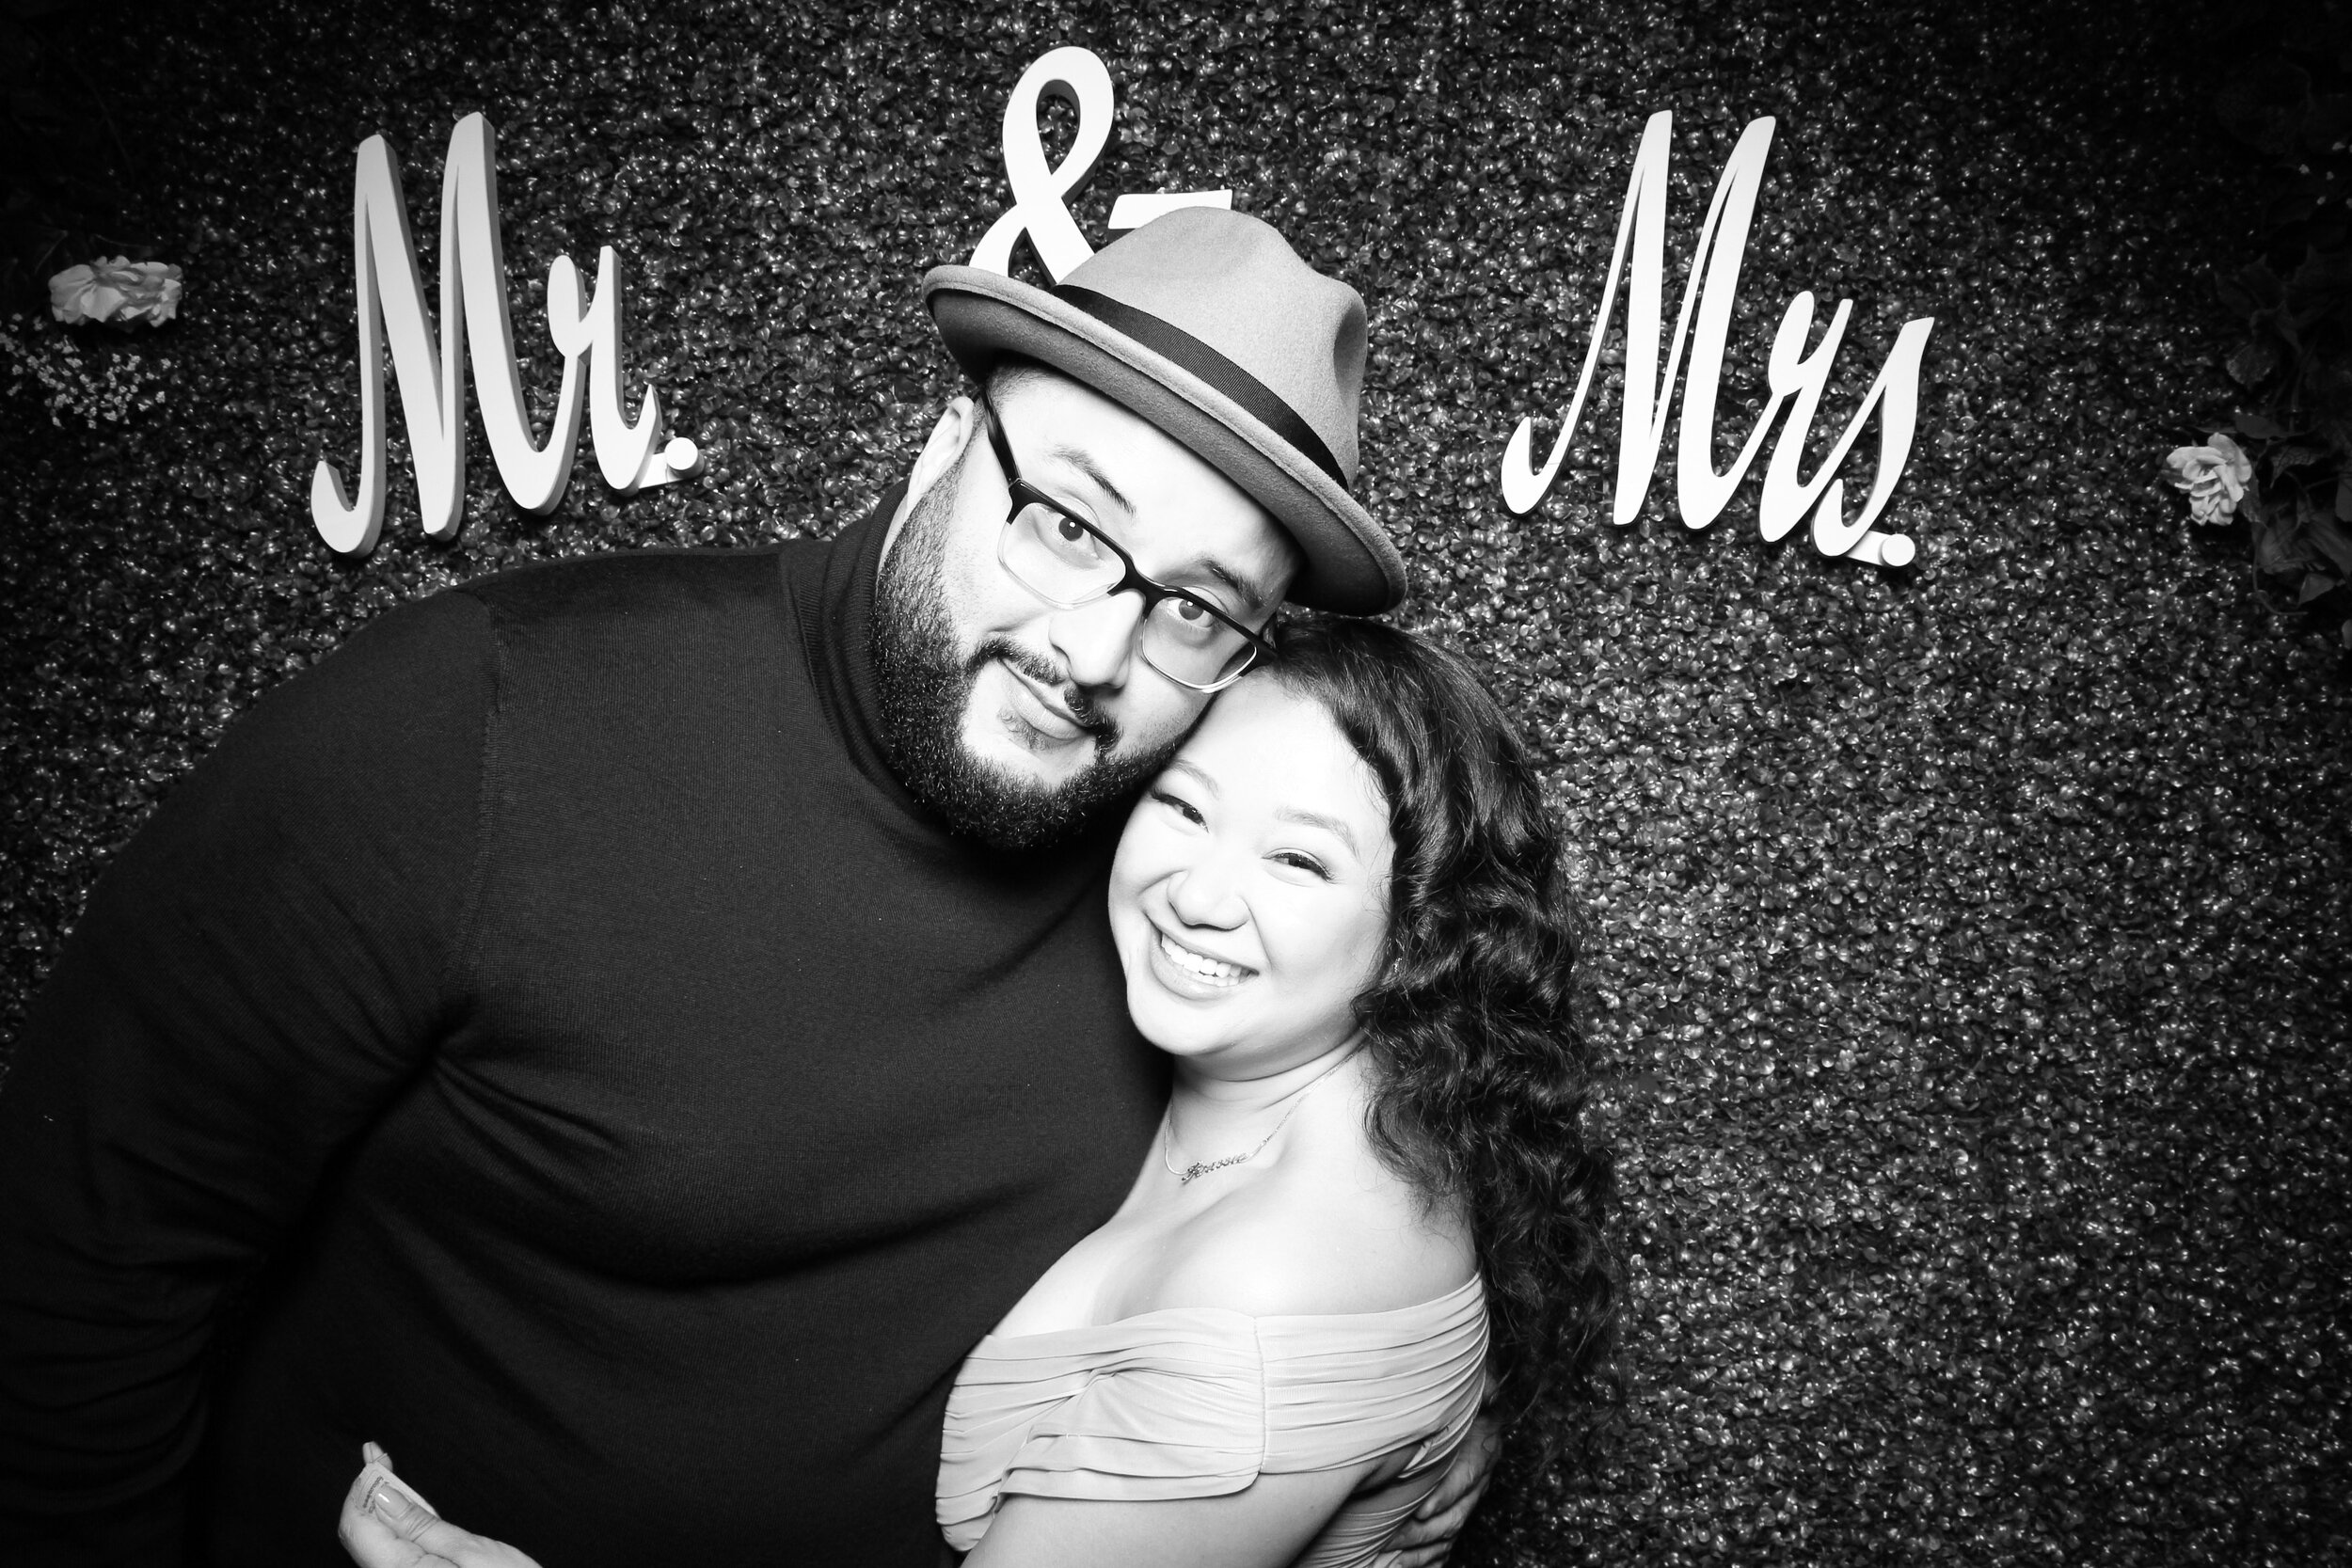 Green_Hedge_Ivy_Wall_Backdrop_Photo_Booth_Rental_Chicago_02.jpg